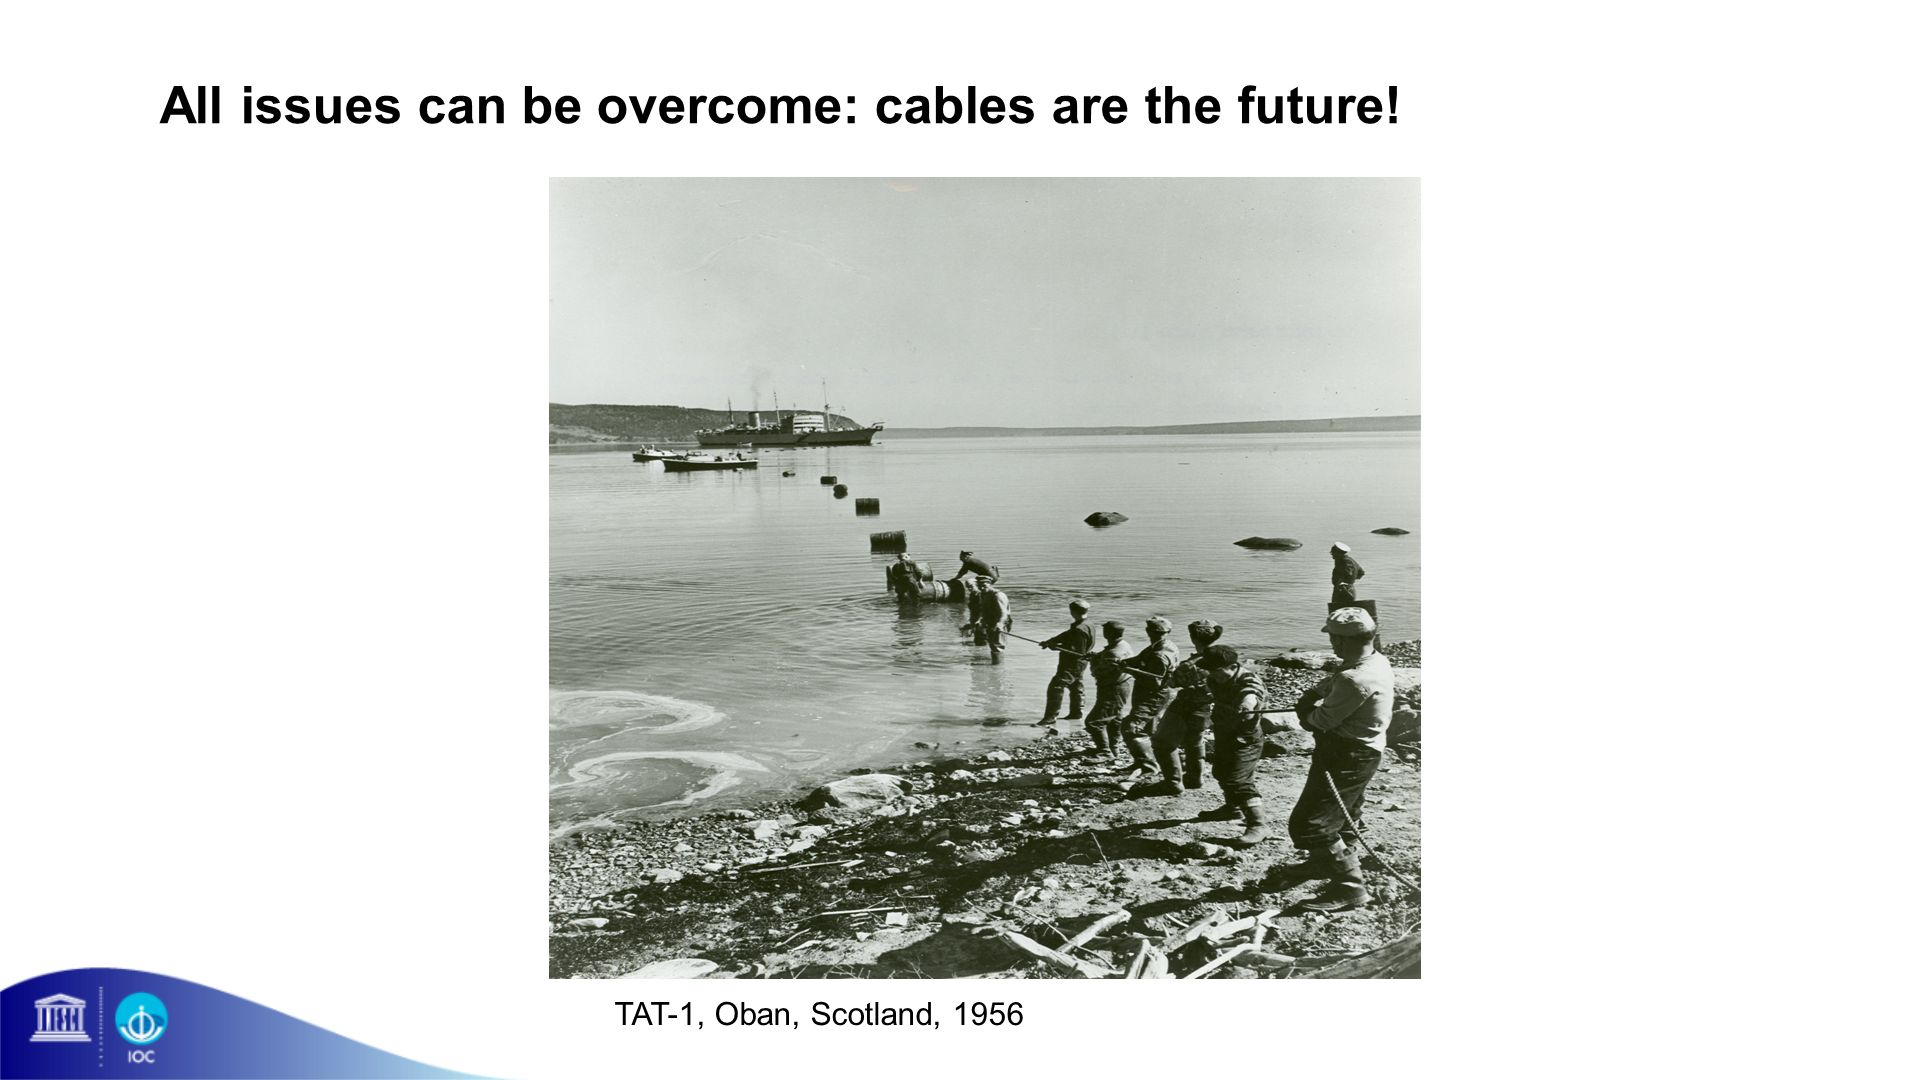 All issues can be overcome: cables are the future! TAT-1, Oban, Scotland, 1956